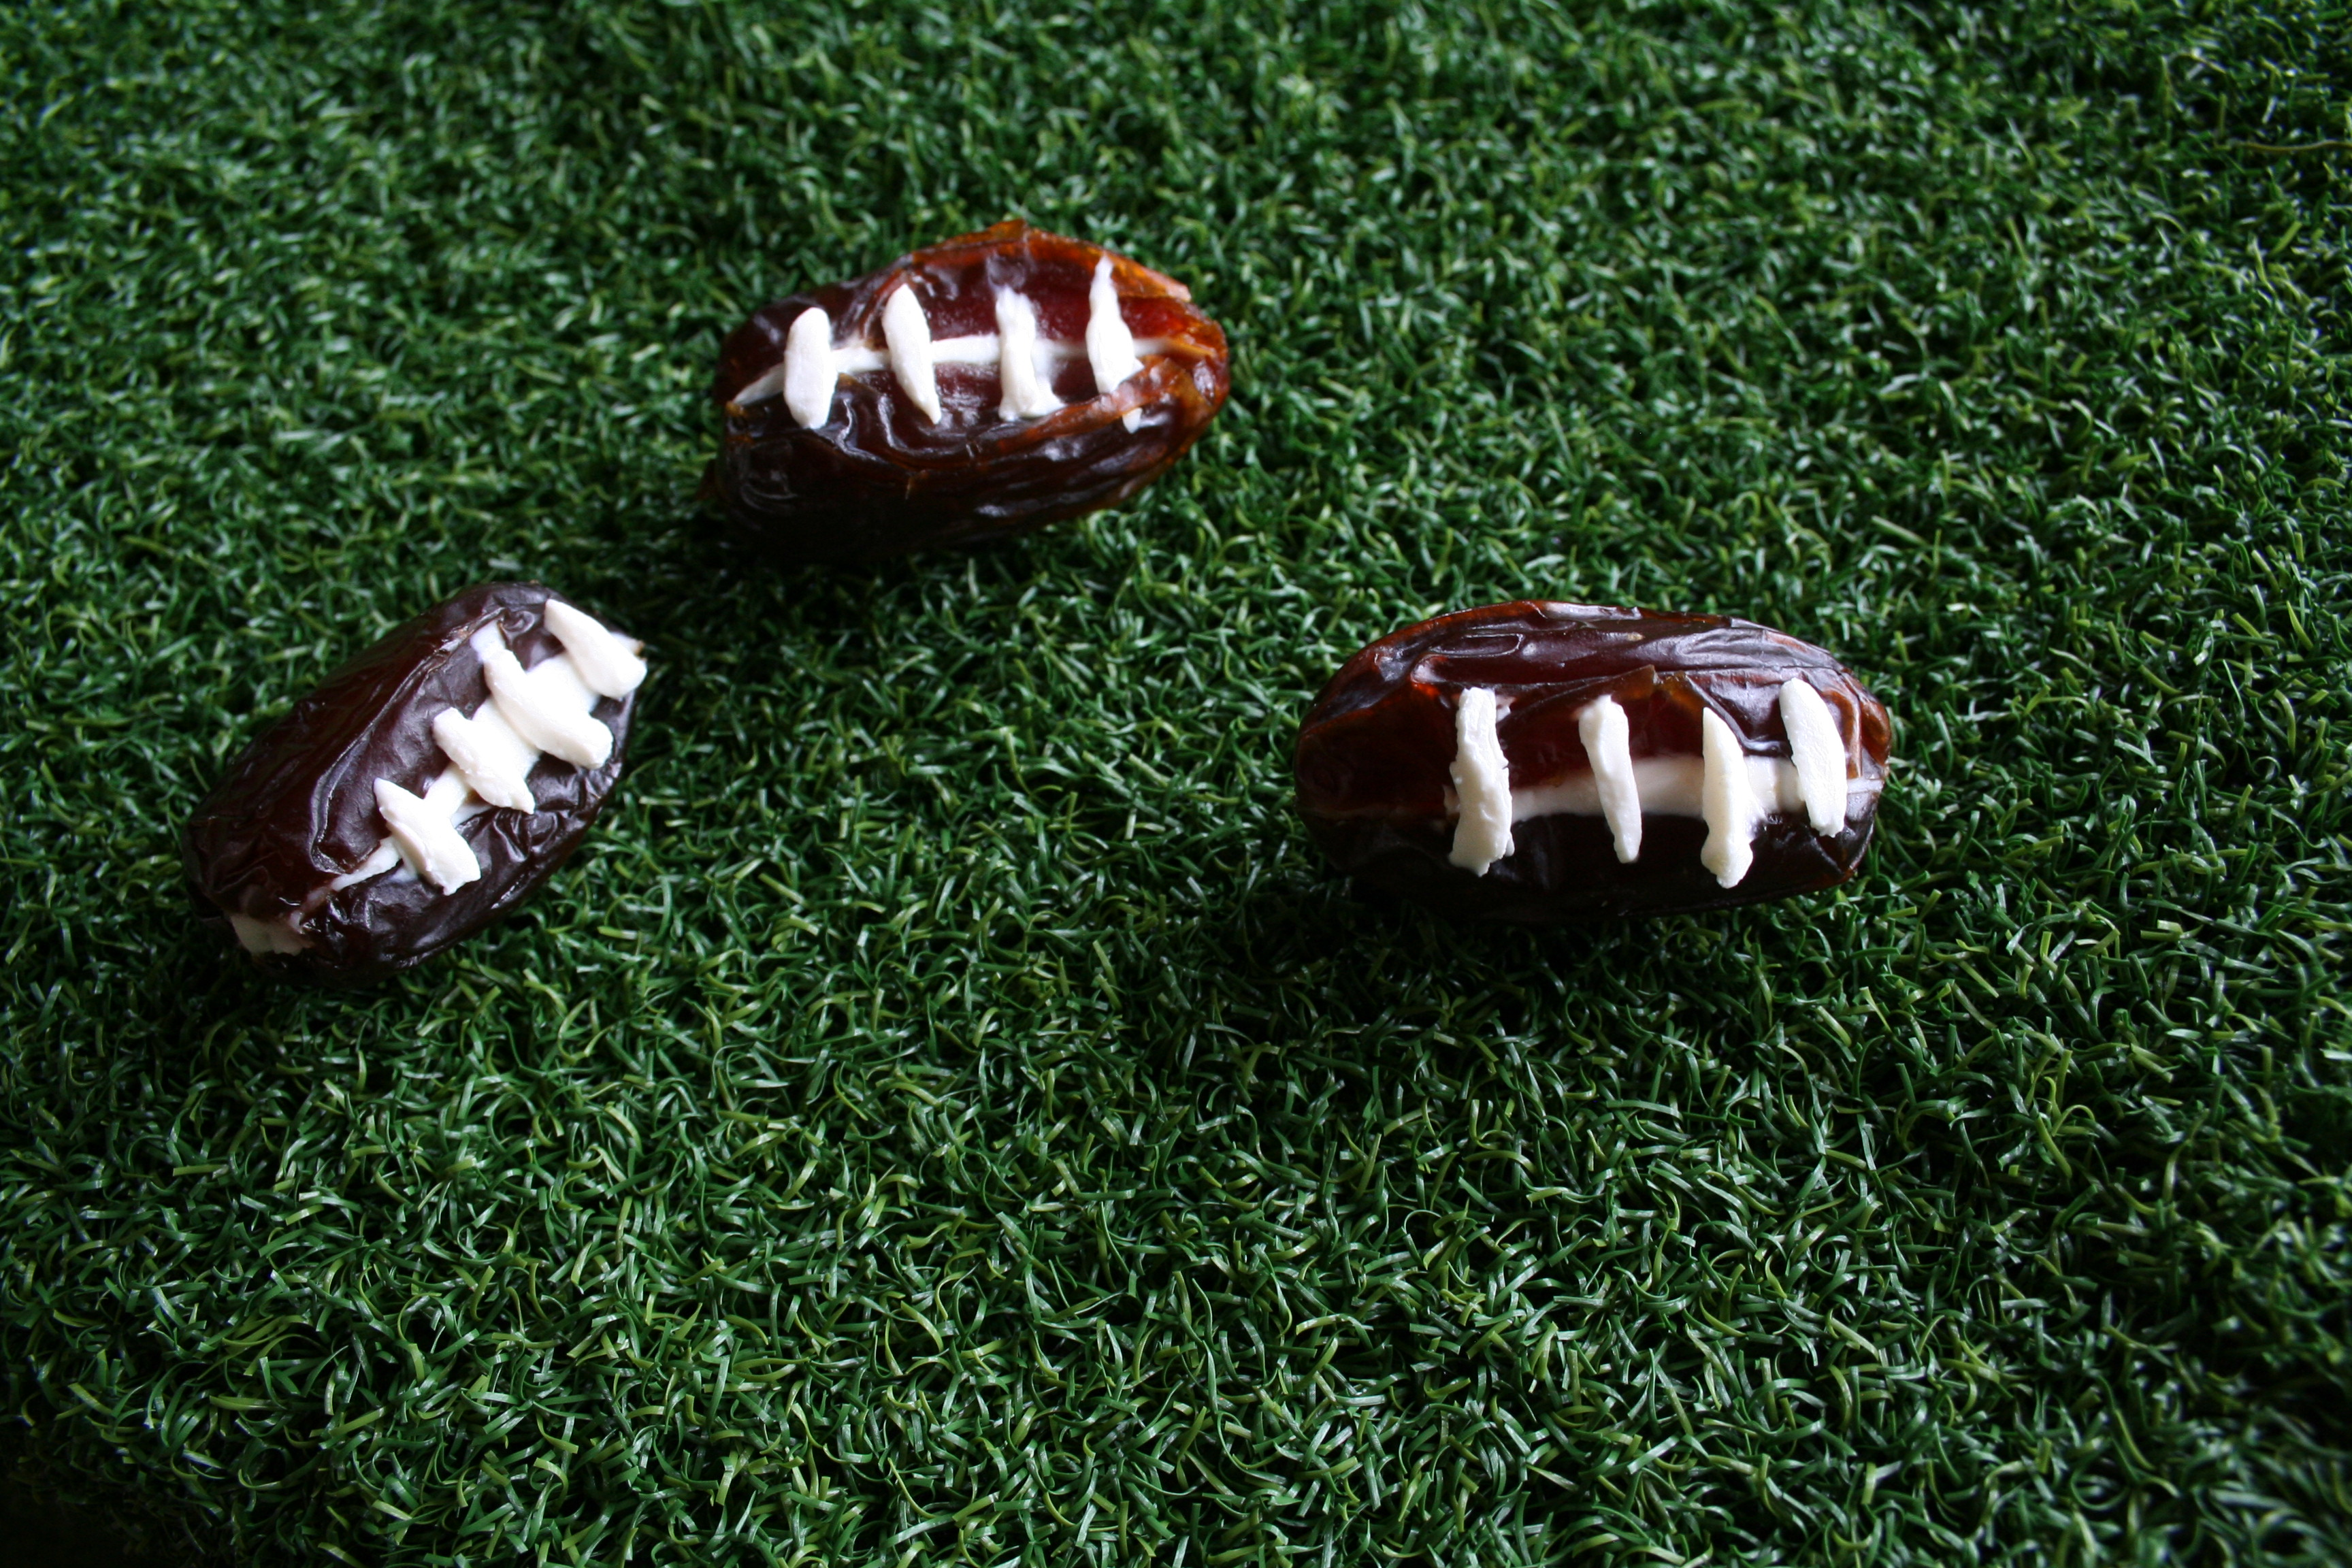 Stuffed Date Footballs on fake grass.